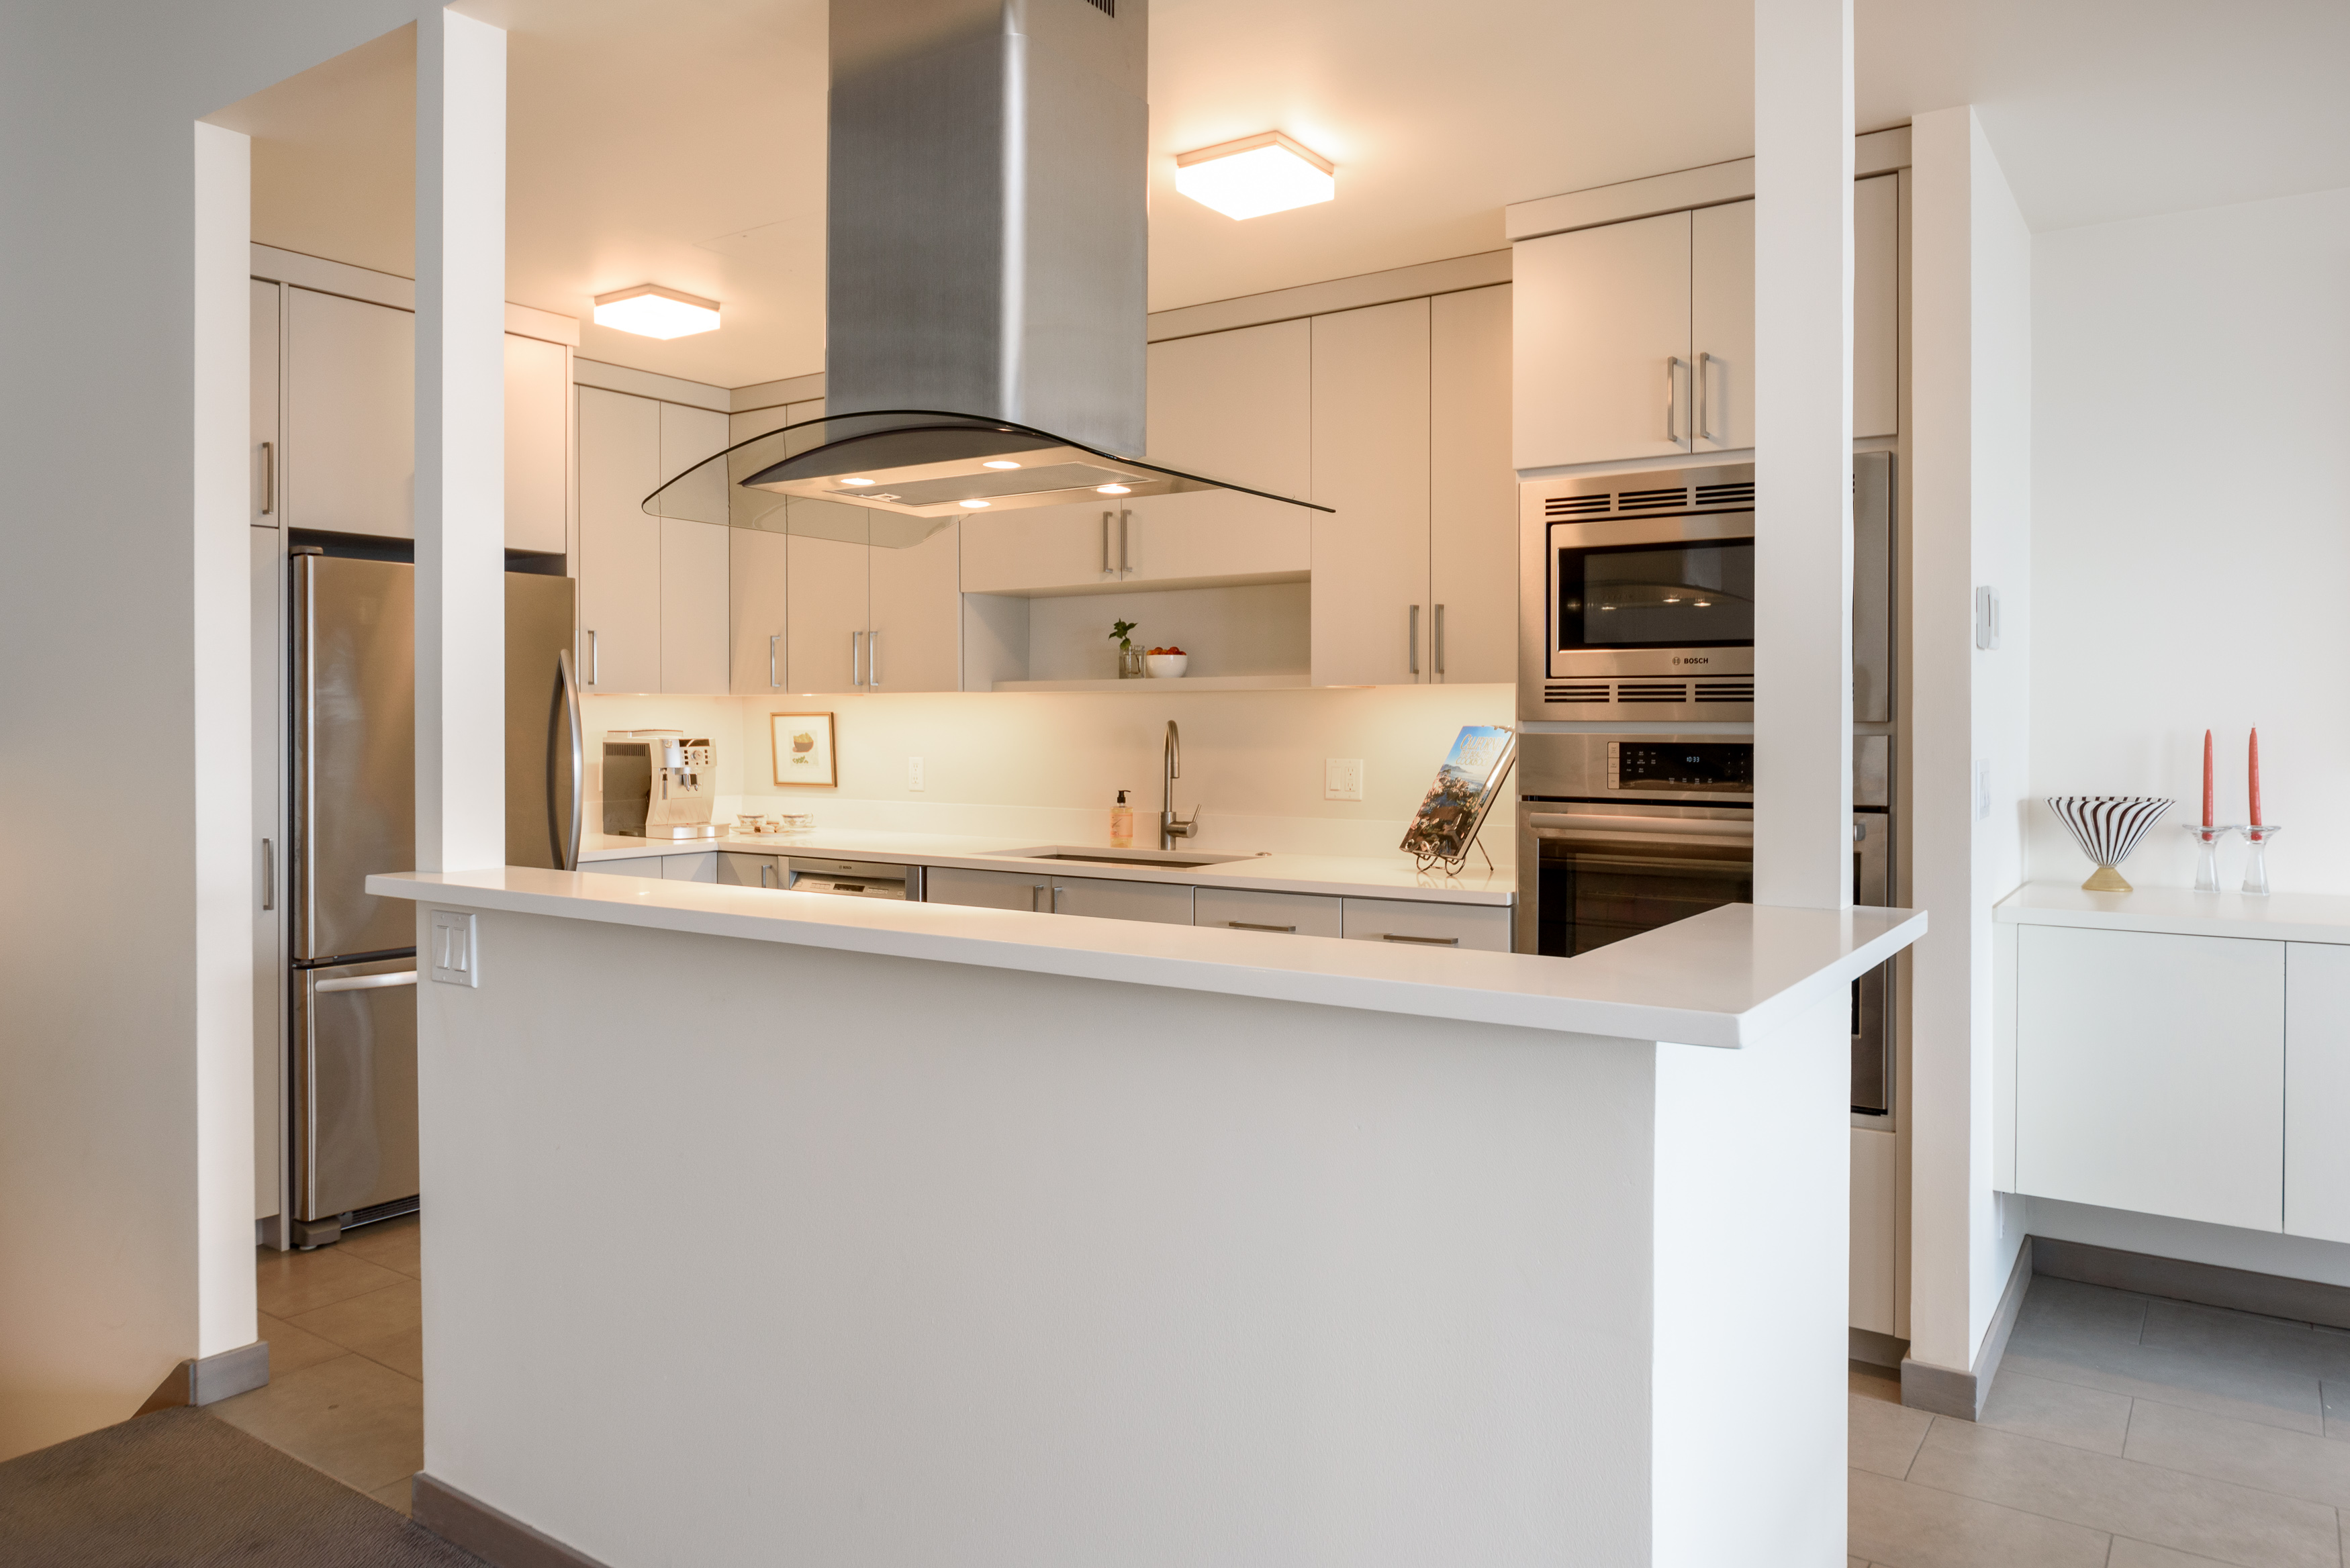 Two Views of the Same Seattle Kitchen Remodel McAdams Remodeling